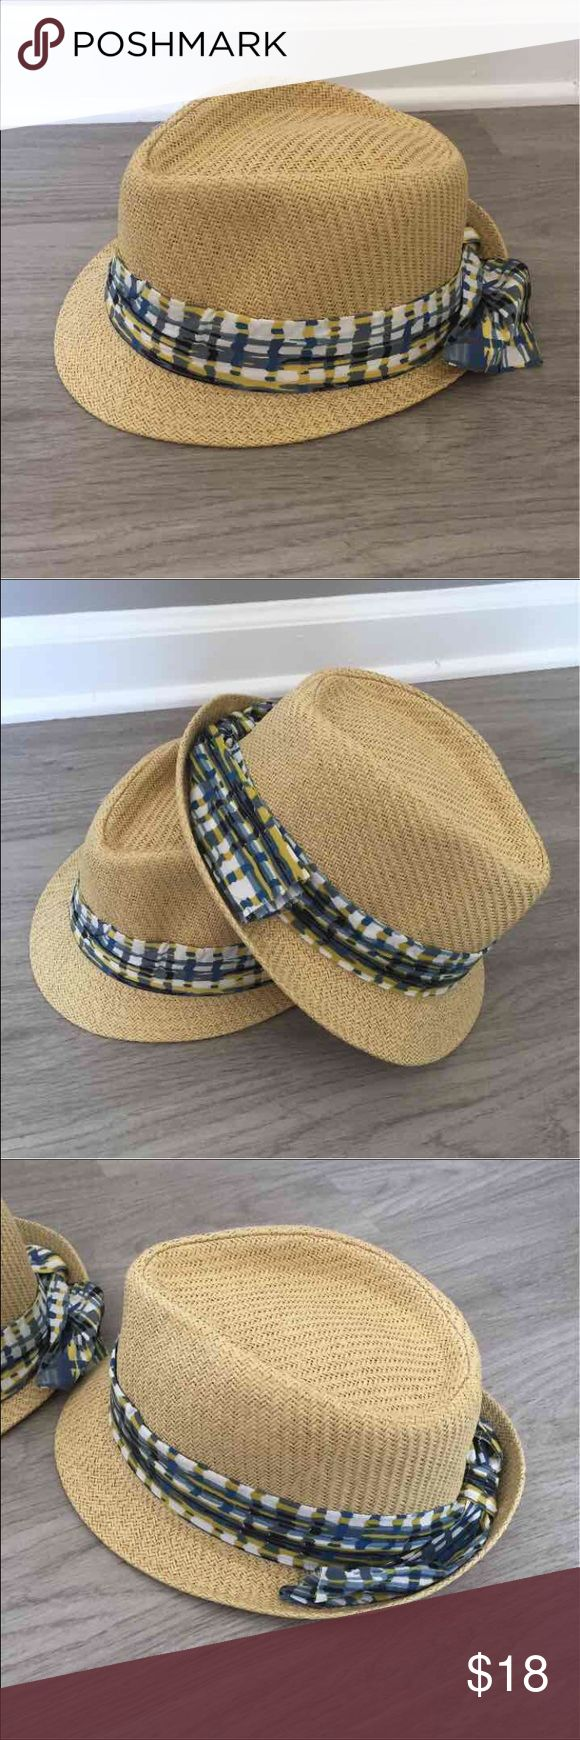 2 Fedora Beach Hats NWOT Get 2 fedora straw beach hats *never worn with plaid sash around both. Price includes both hats! Tags: free people, hats, beach wear, jcrew, BP, Tobi, Accessories Hats